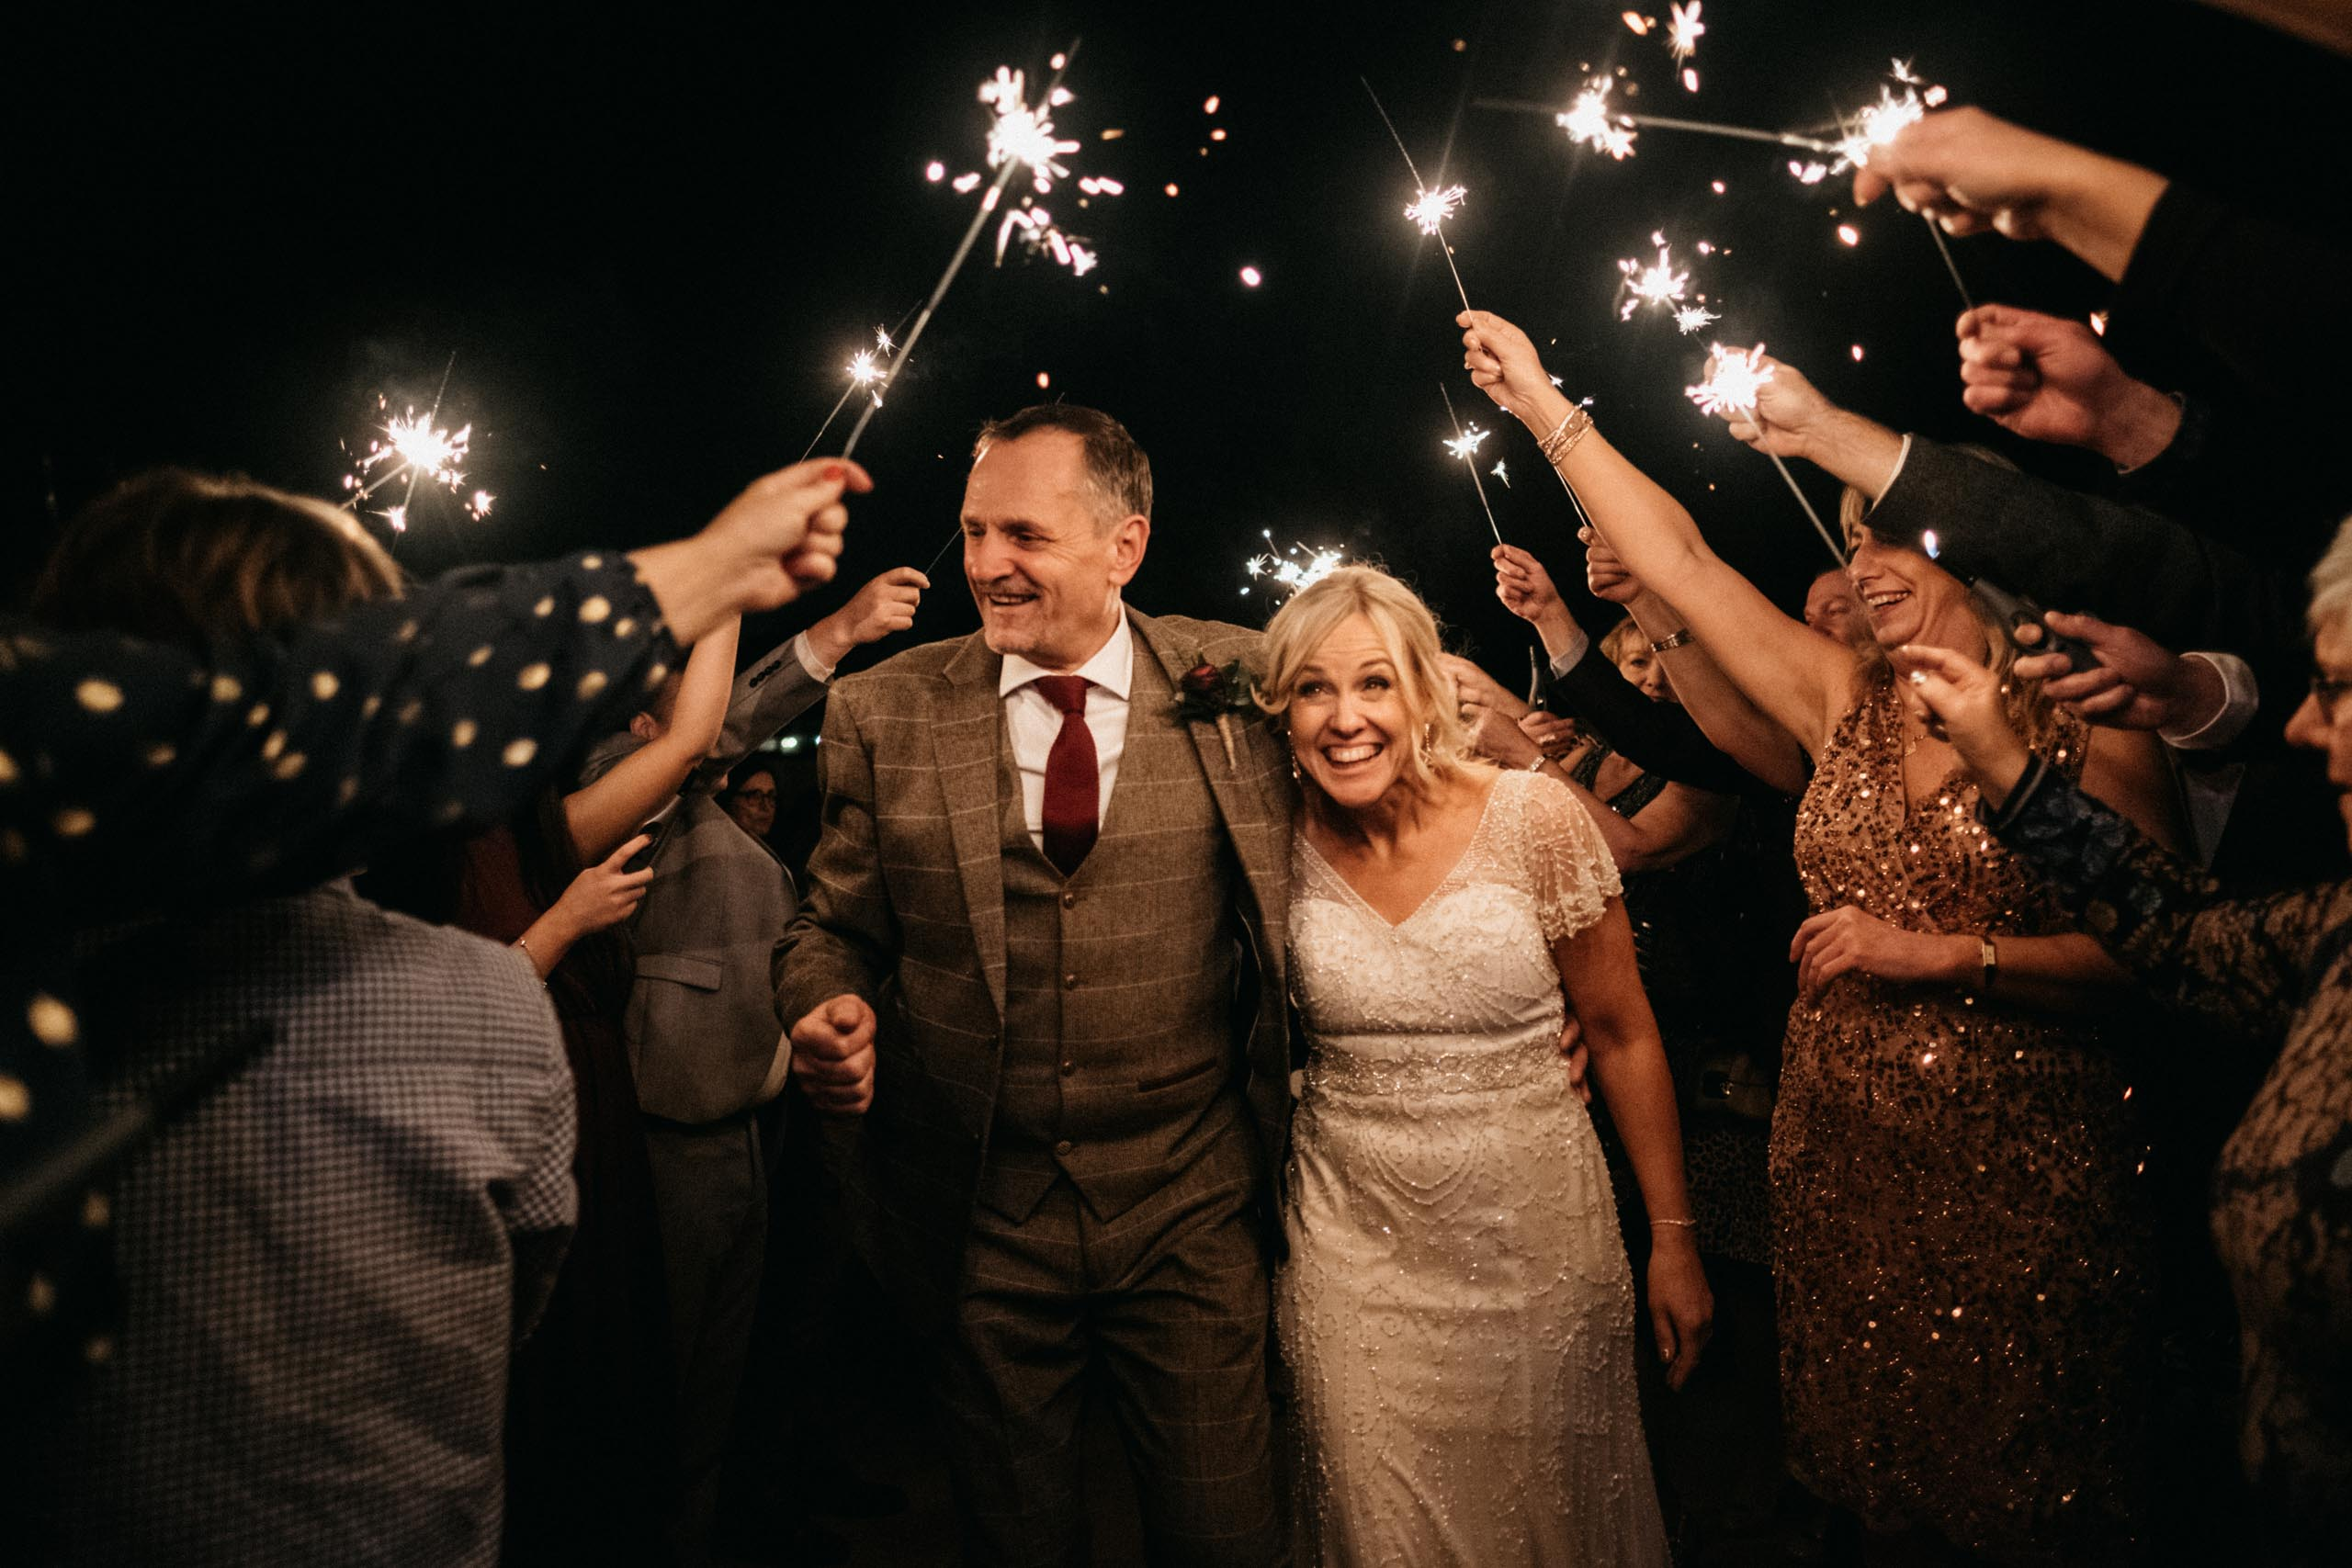 Orestone Manor Wedding Photographer Devon Stuart Dudleston Photography IanJoanna 19